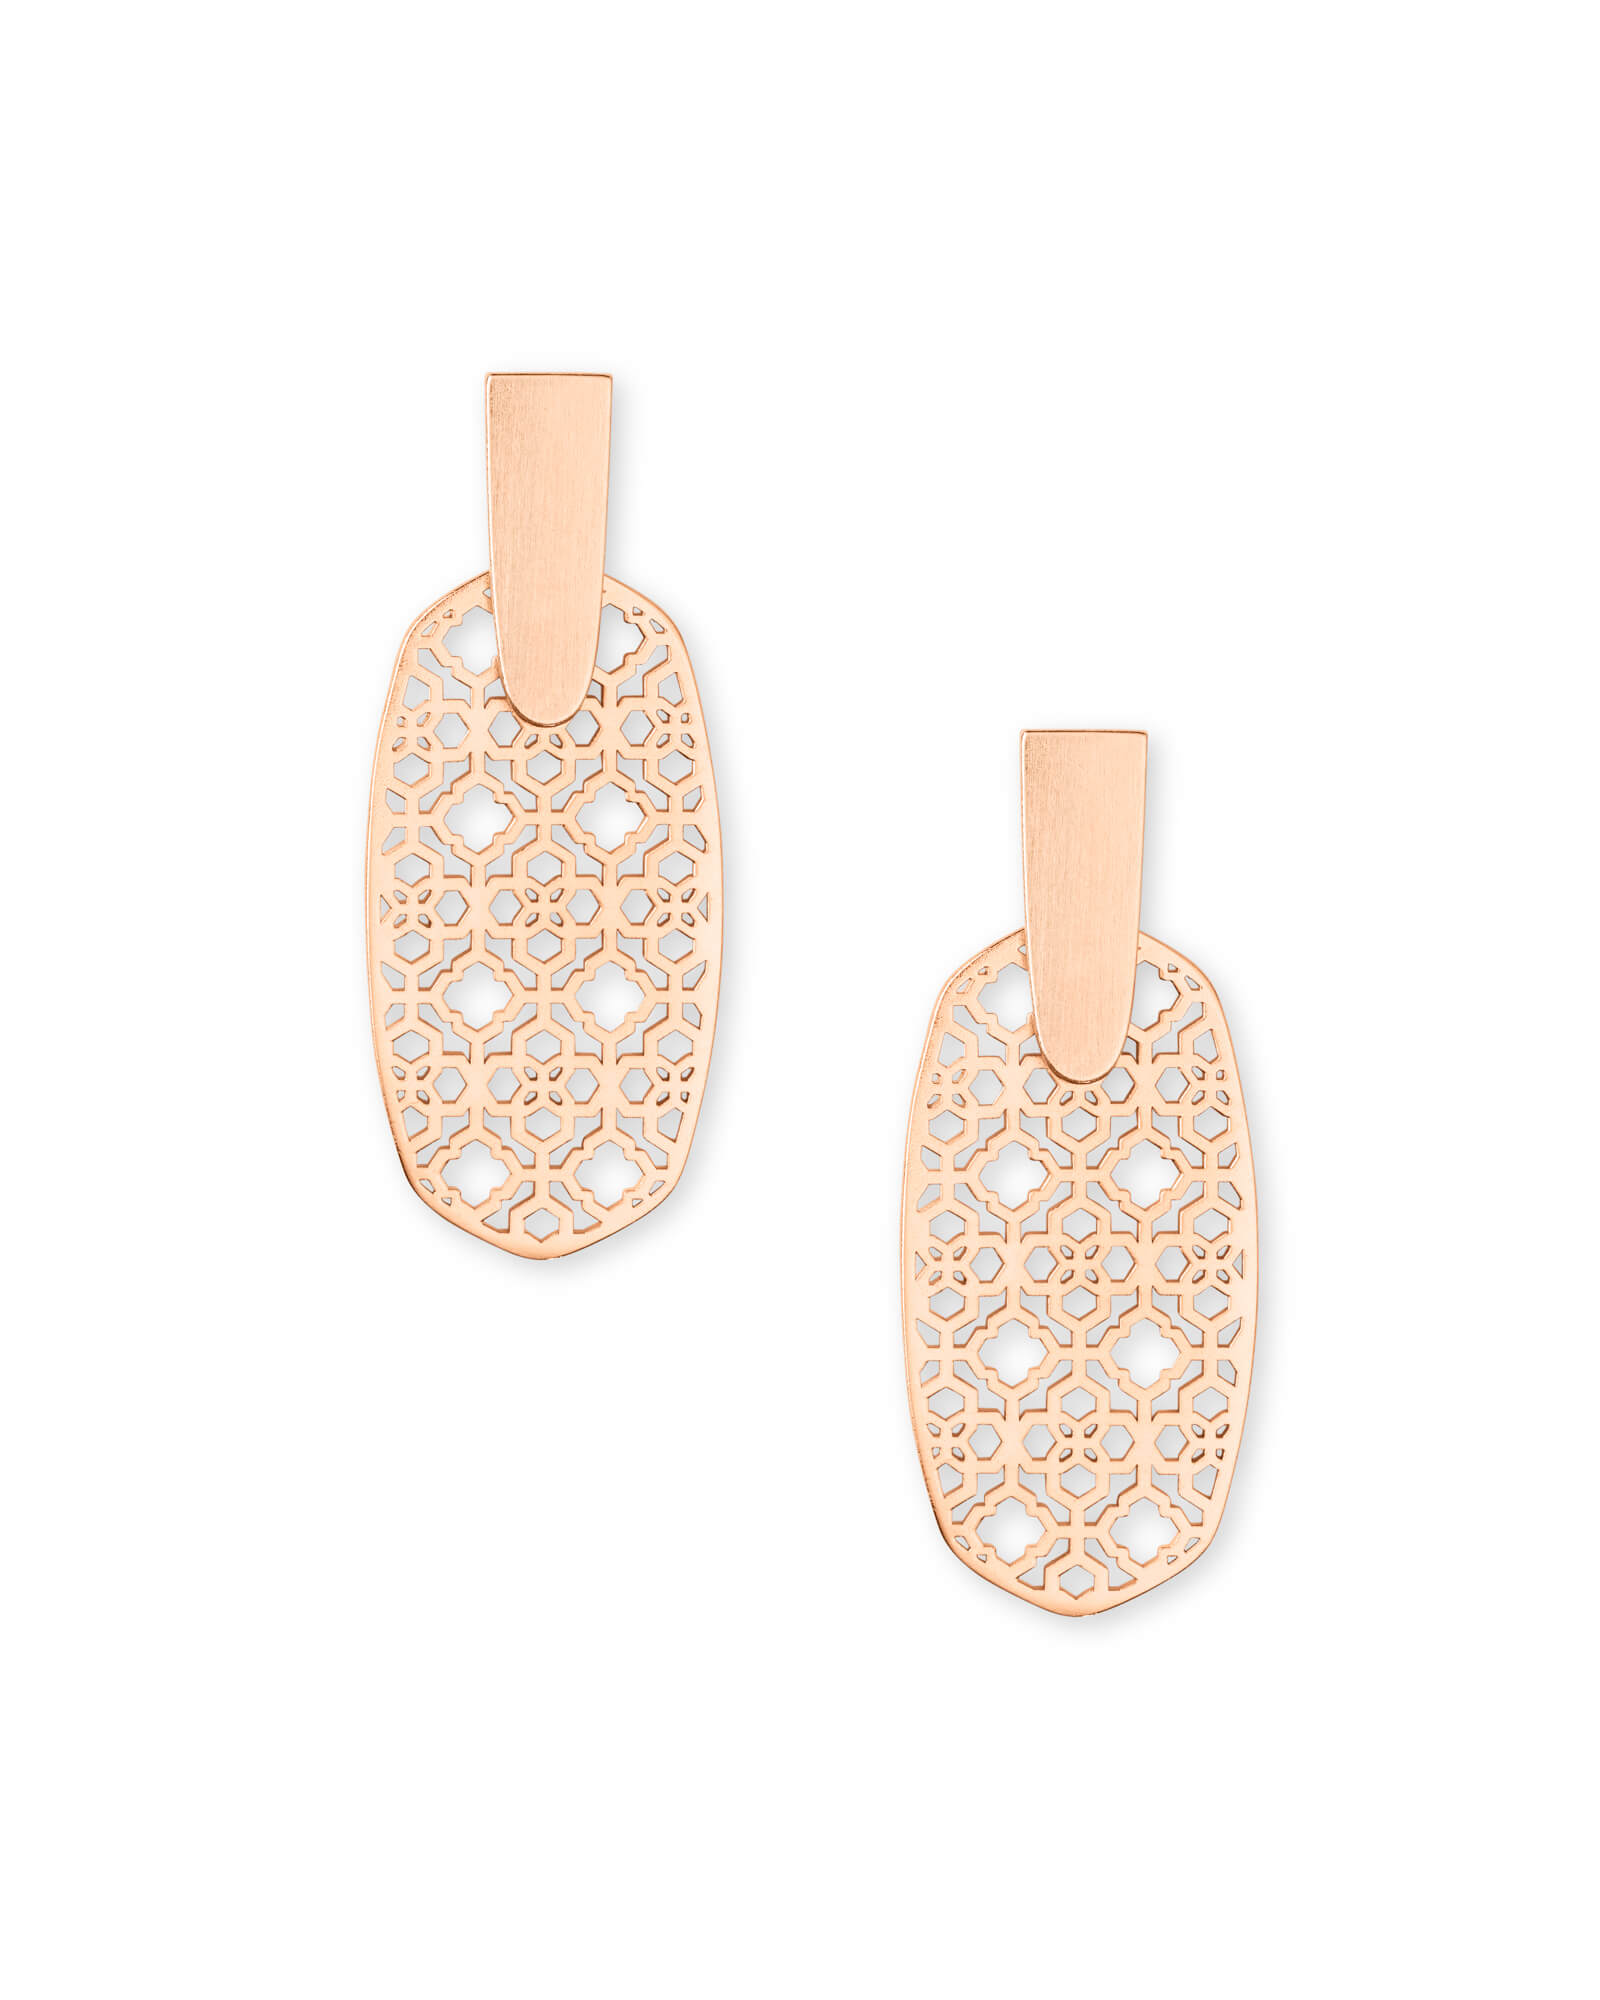 Aragon Rose Gold Drop Earrings in Rose Gold Filigree